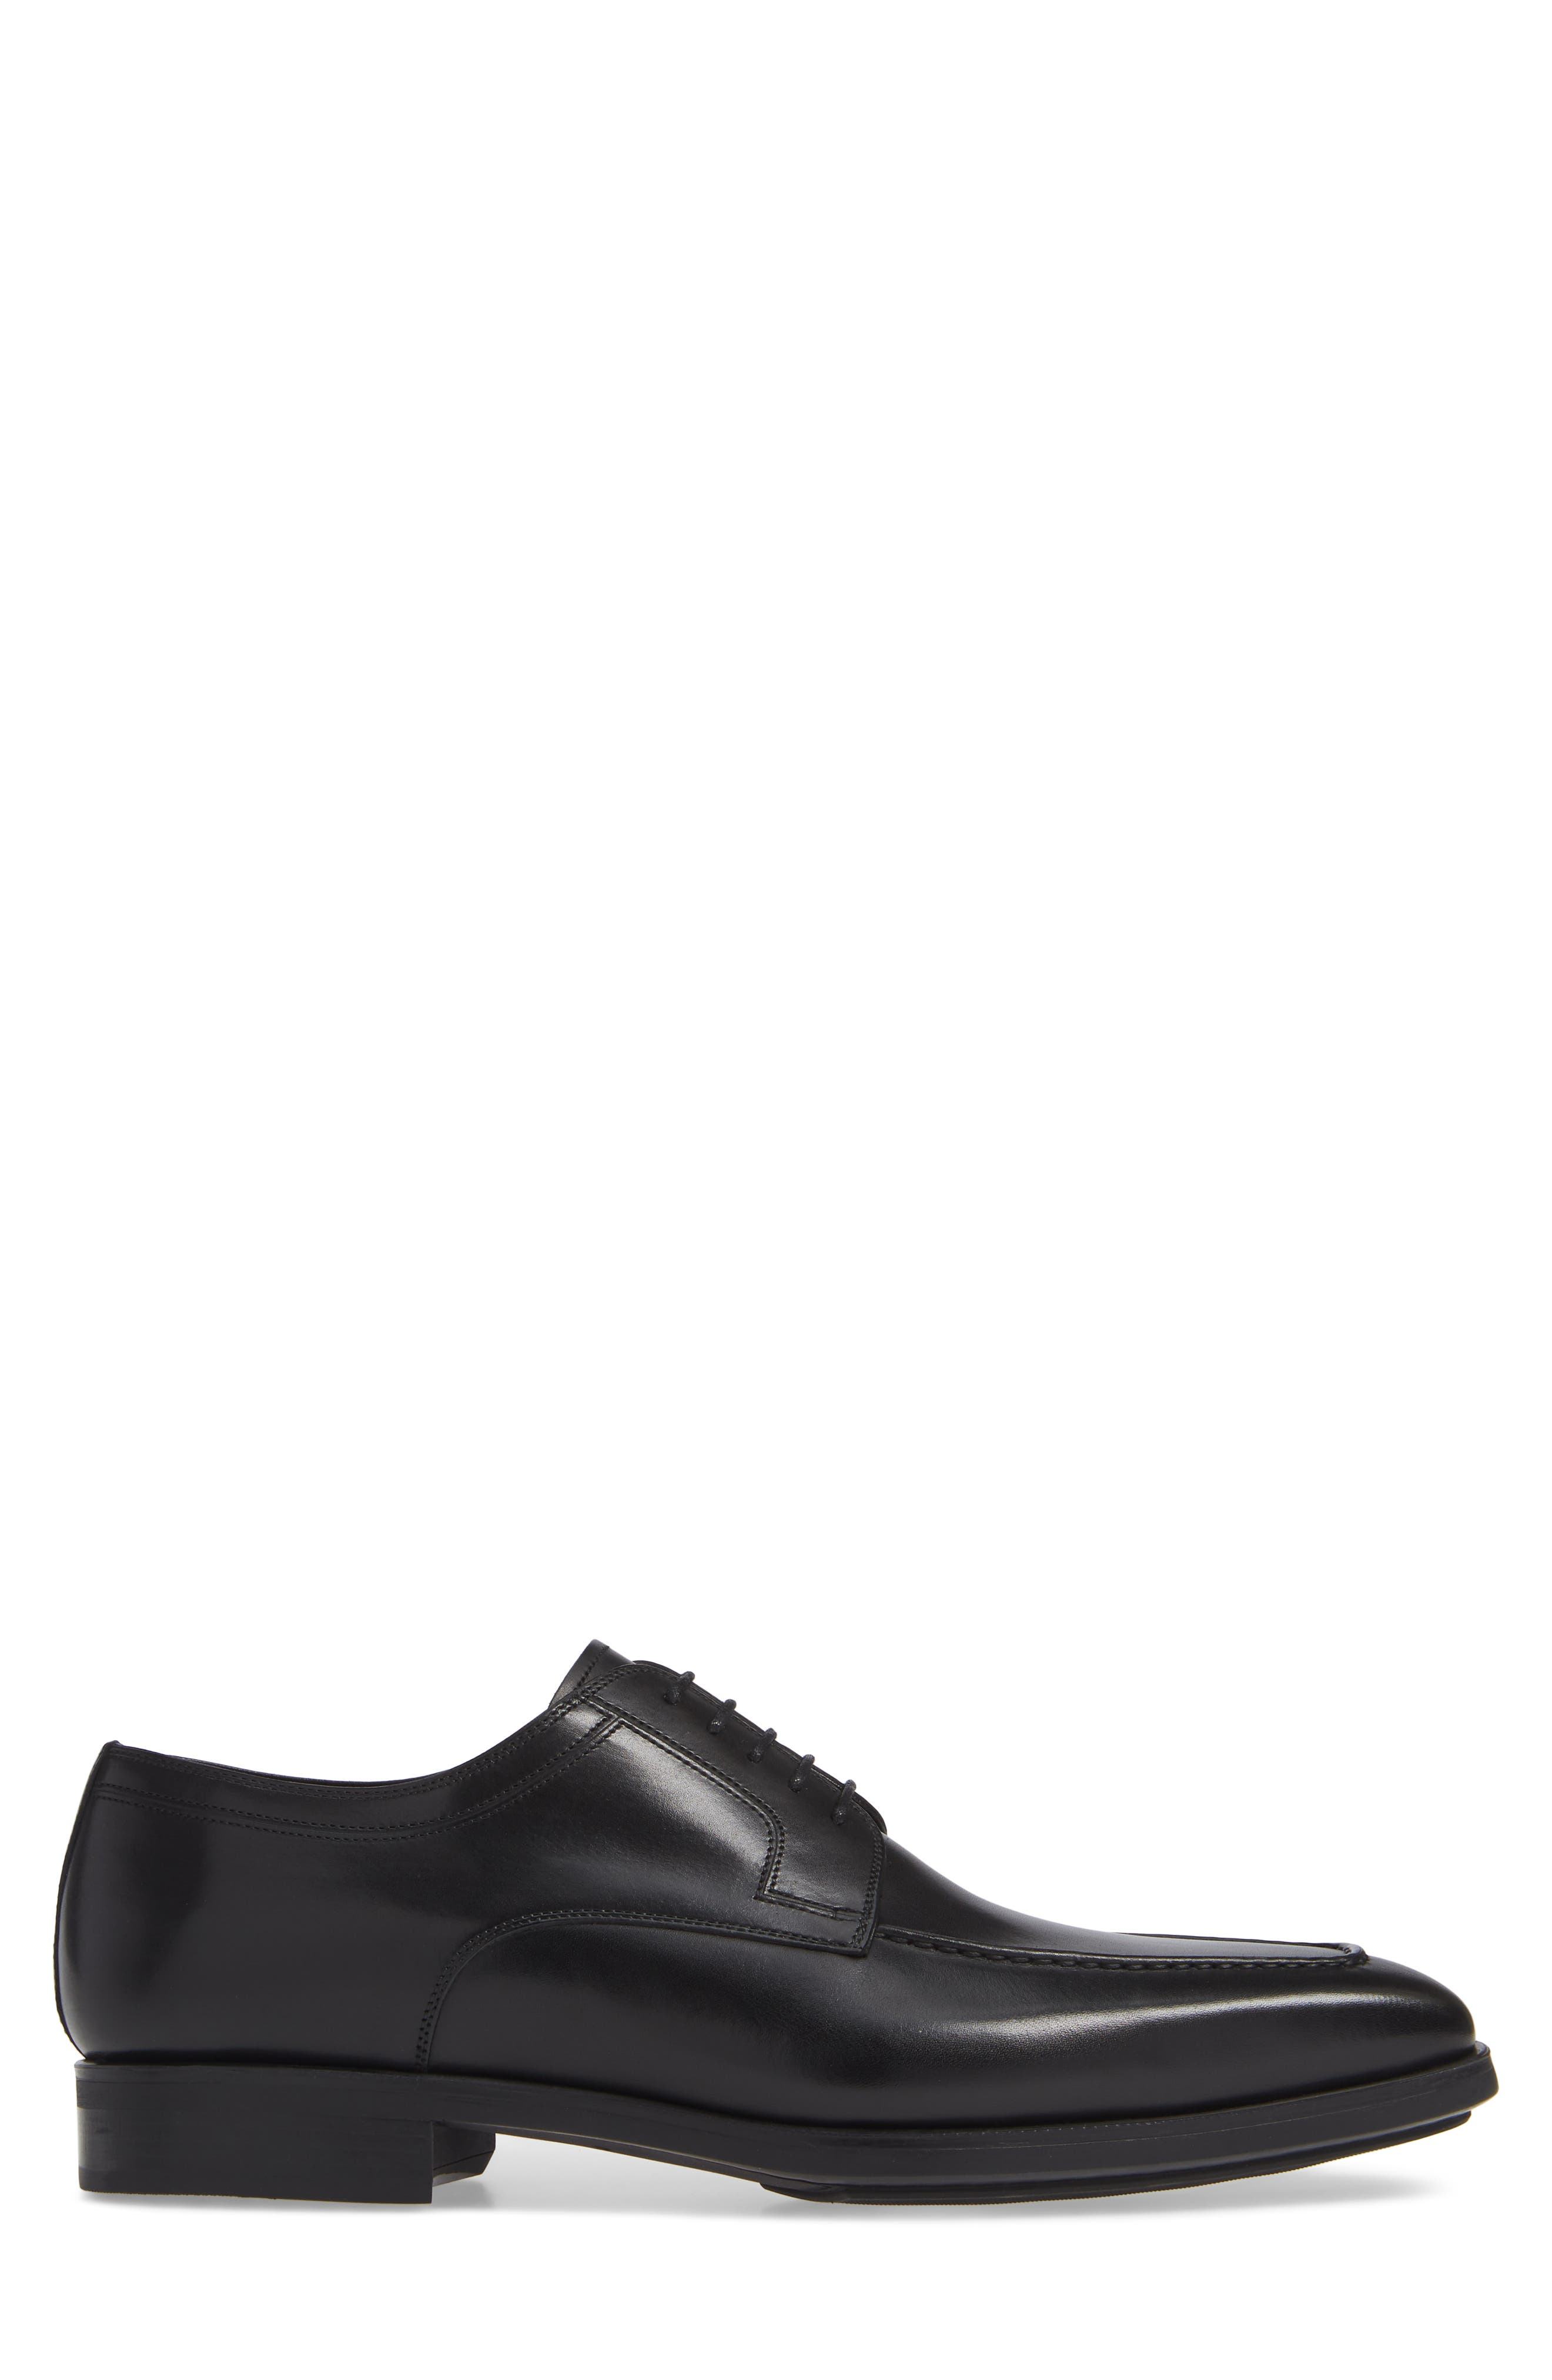 MAGNANNI,                             Diversa Romelo Apron Toe Derby,                             Alternate thumbnail 3, color,                             BLACK LEATHER